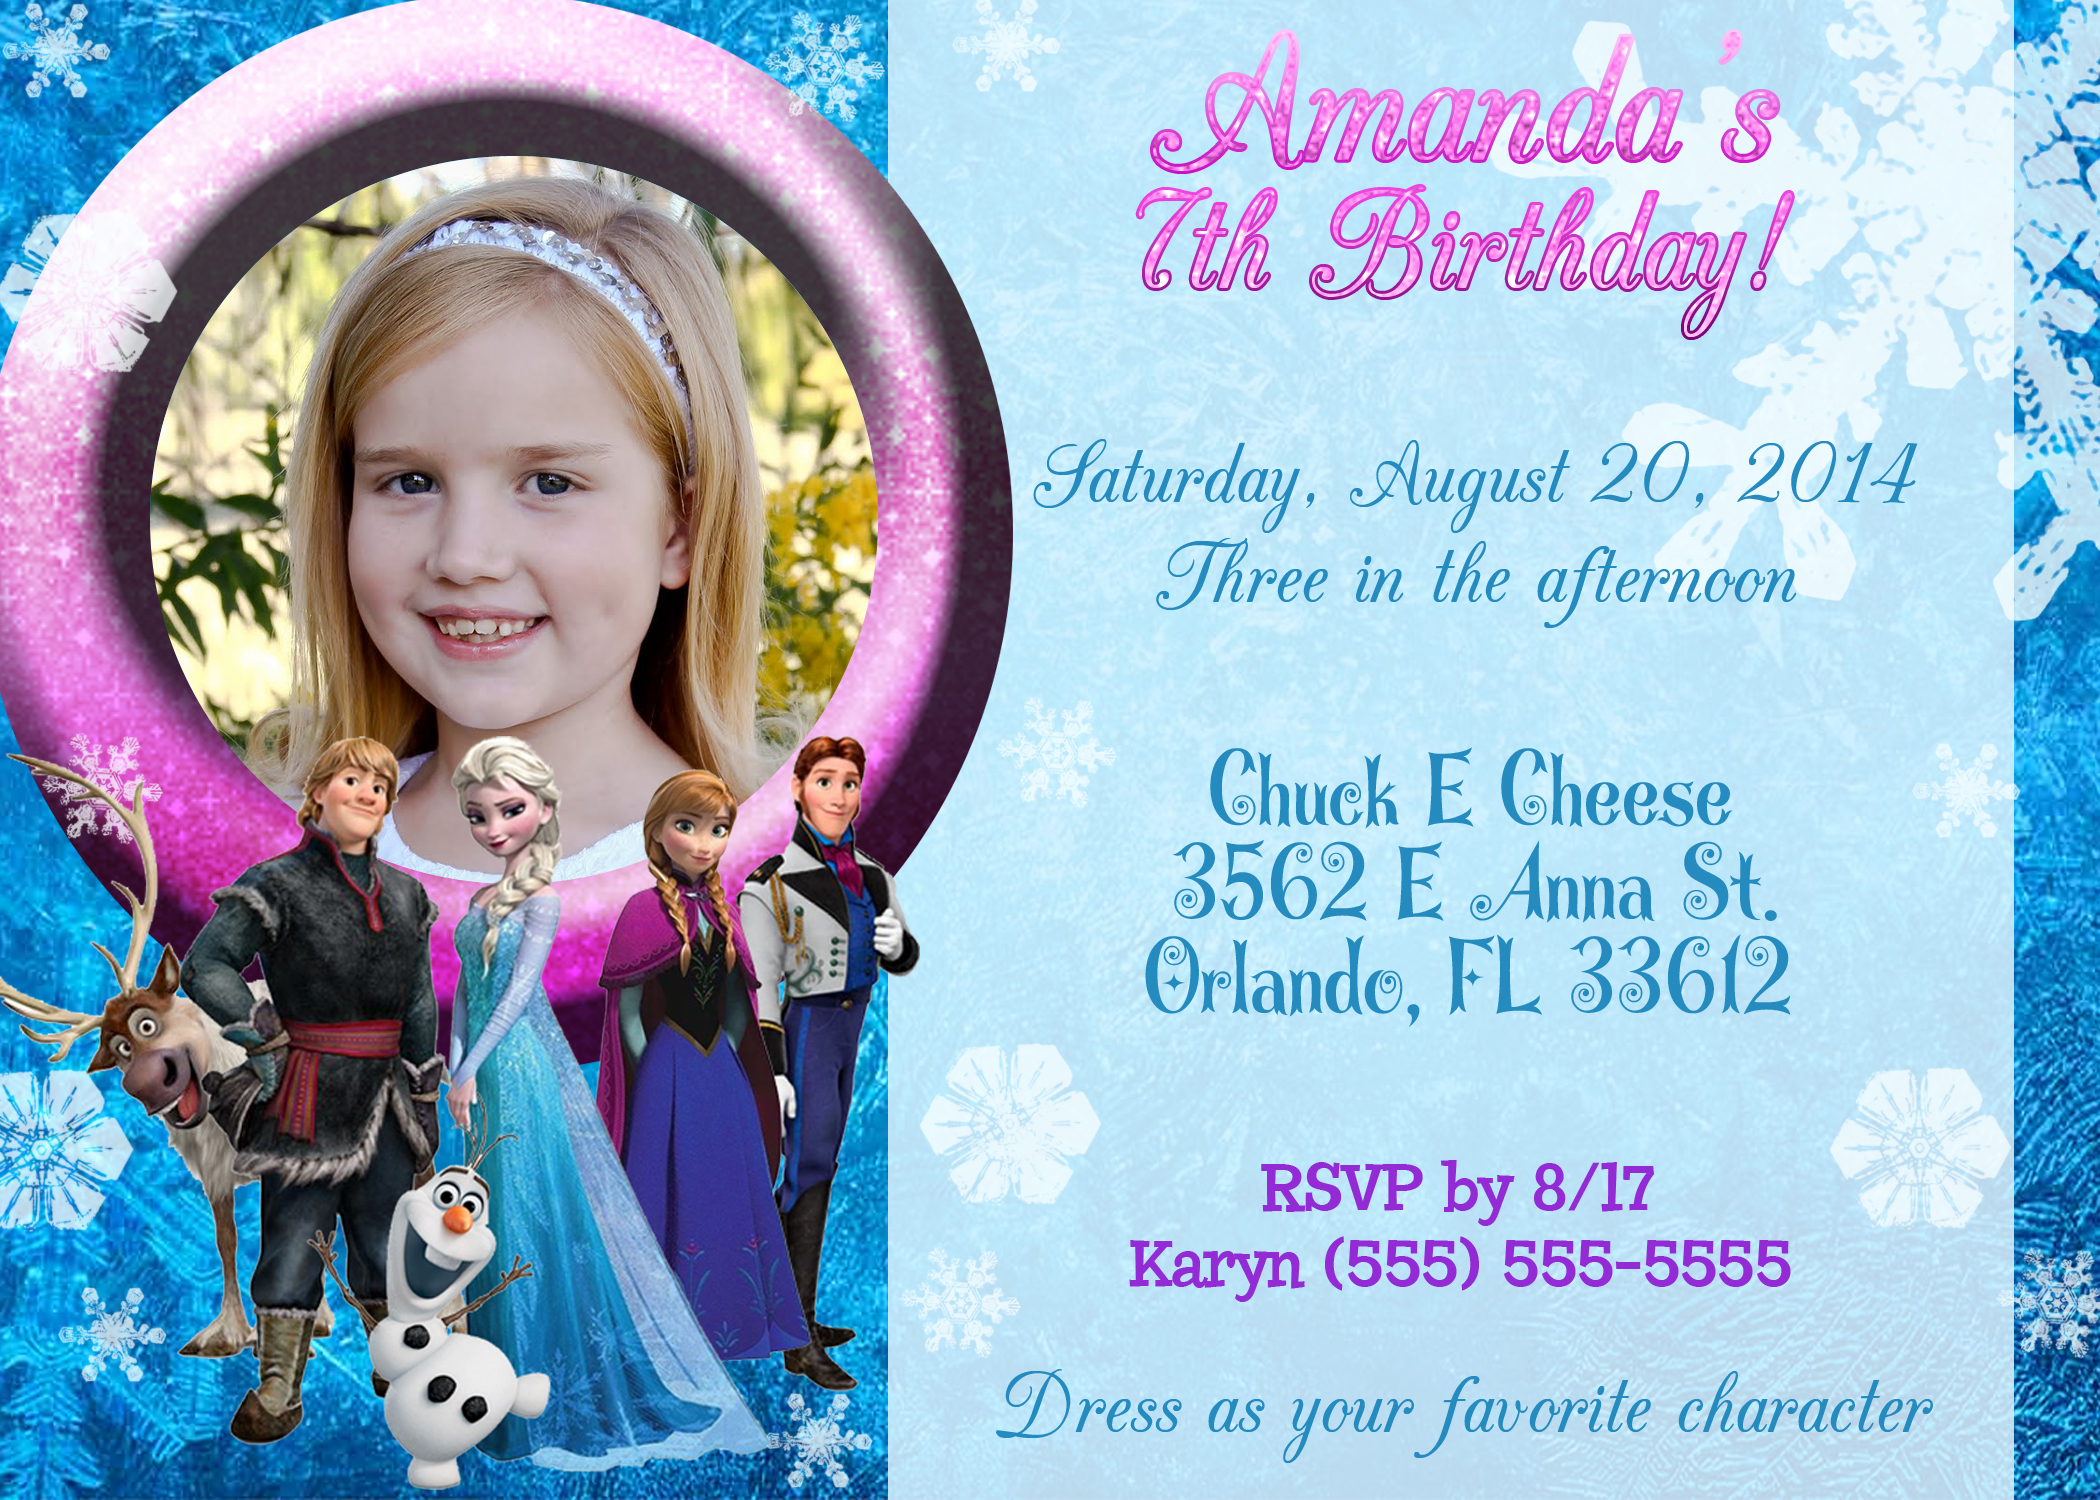 frozen birthday invitation maker ; frozen-birthday-invitation-with-stunning-Birthday-Invitation-Templates-as-a-result-of-an-application-using-a-felicitous-concept-12